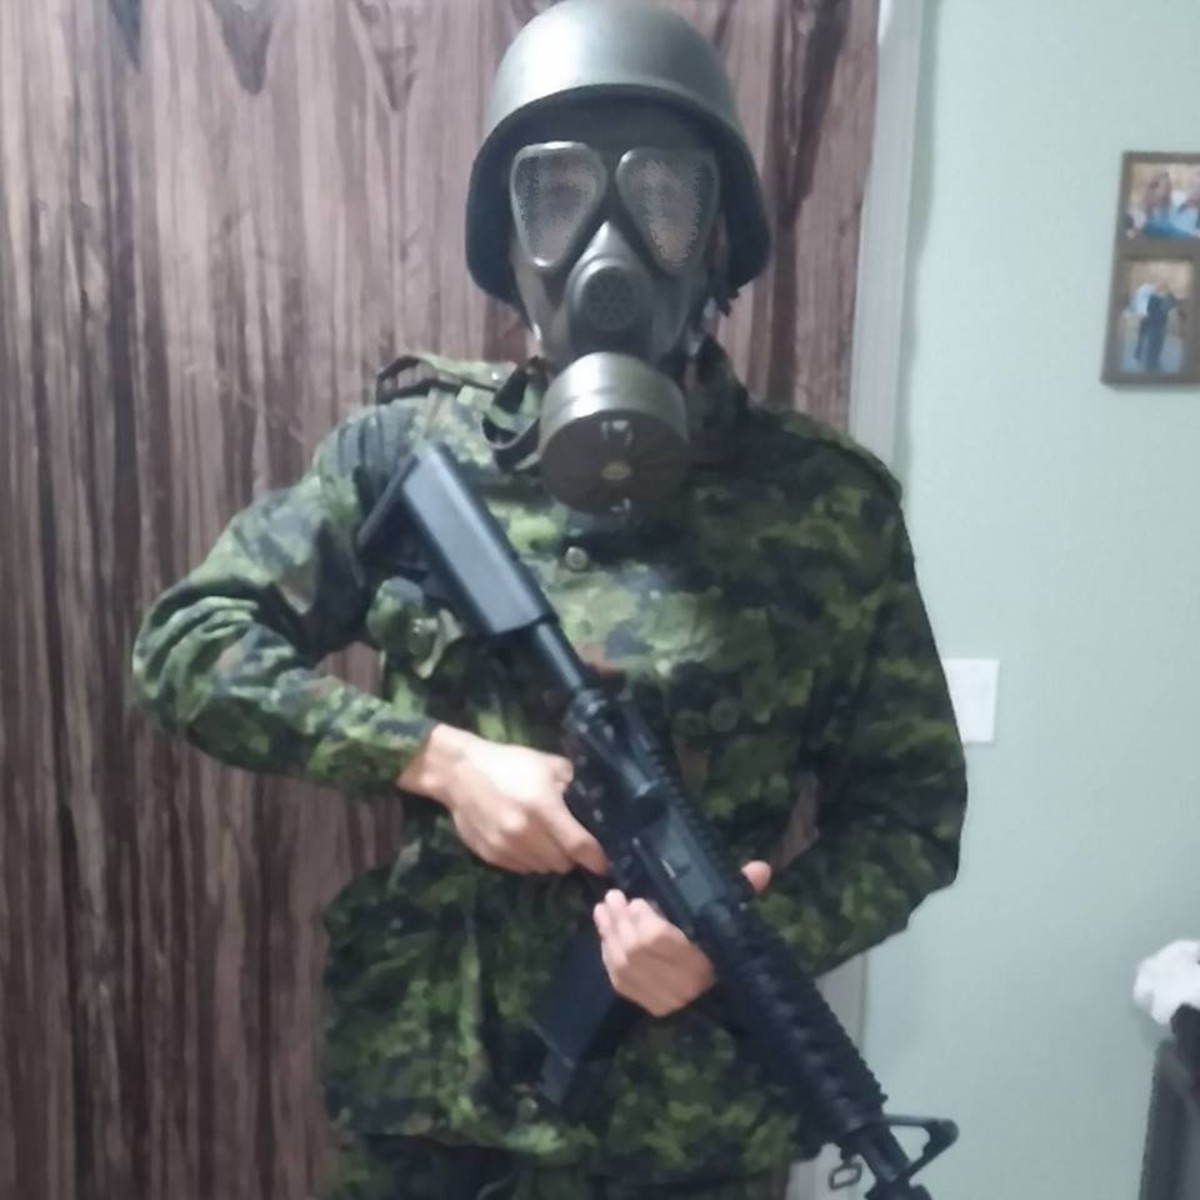 An Airsofter in gear.